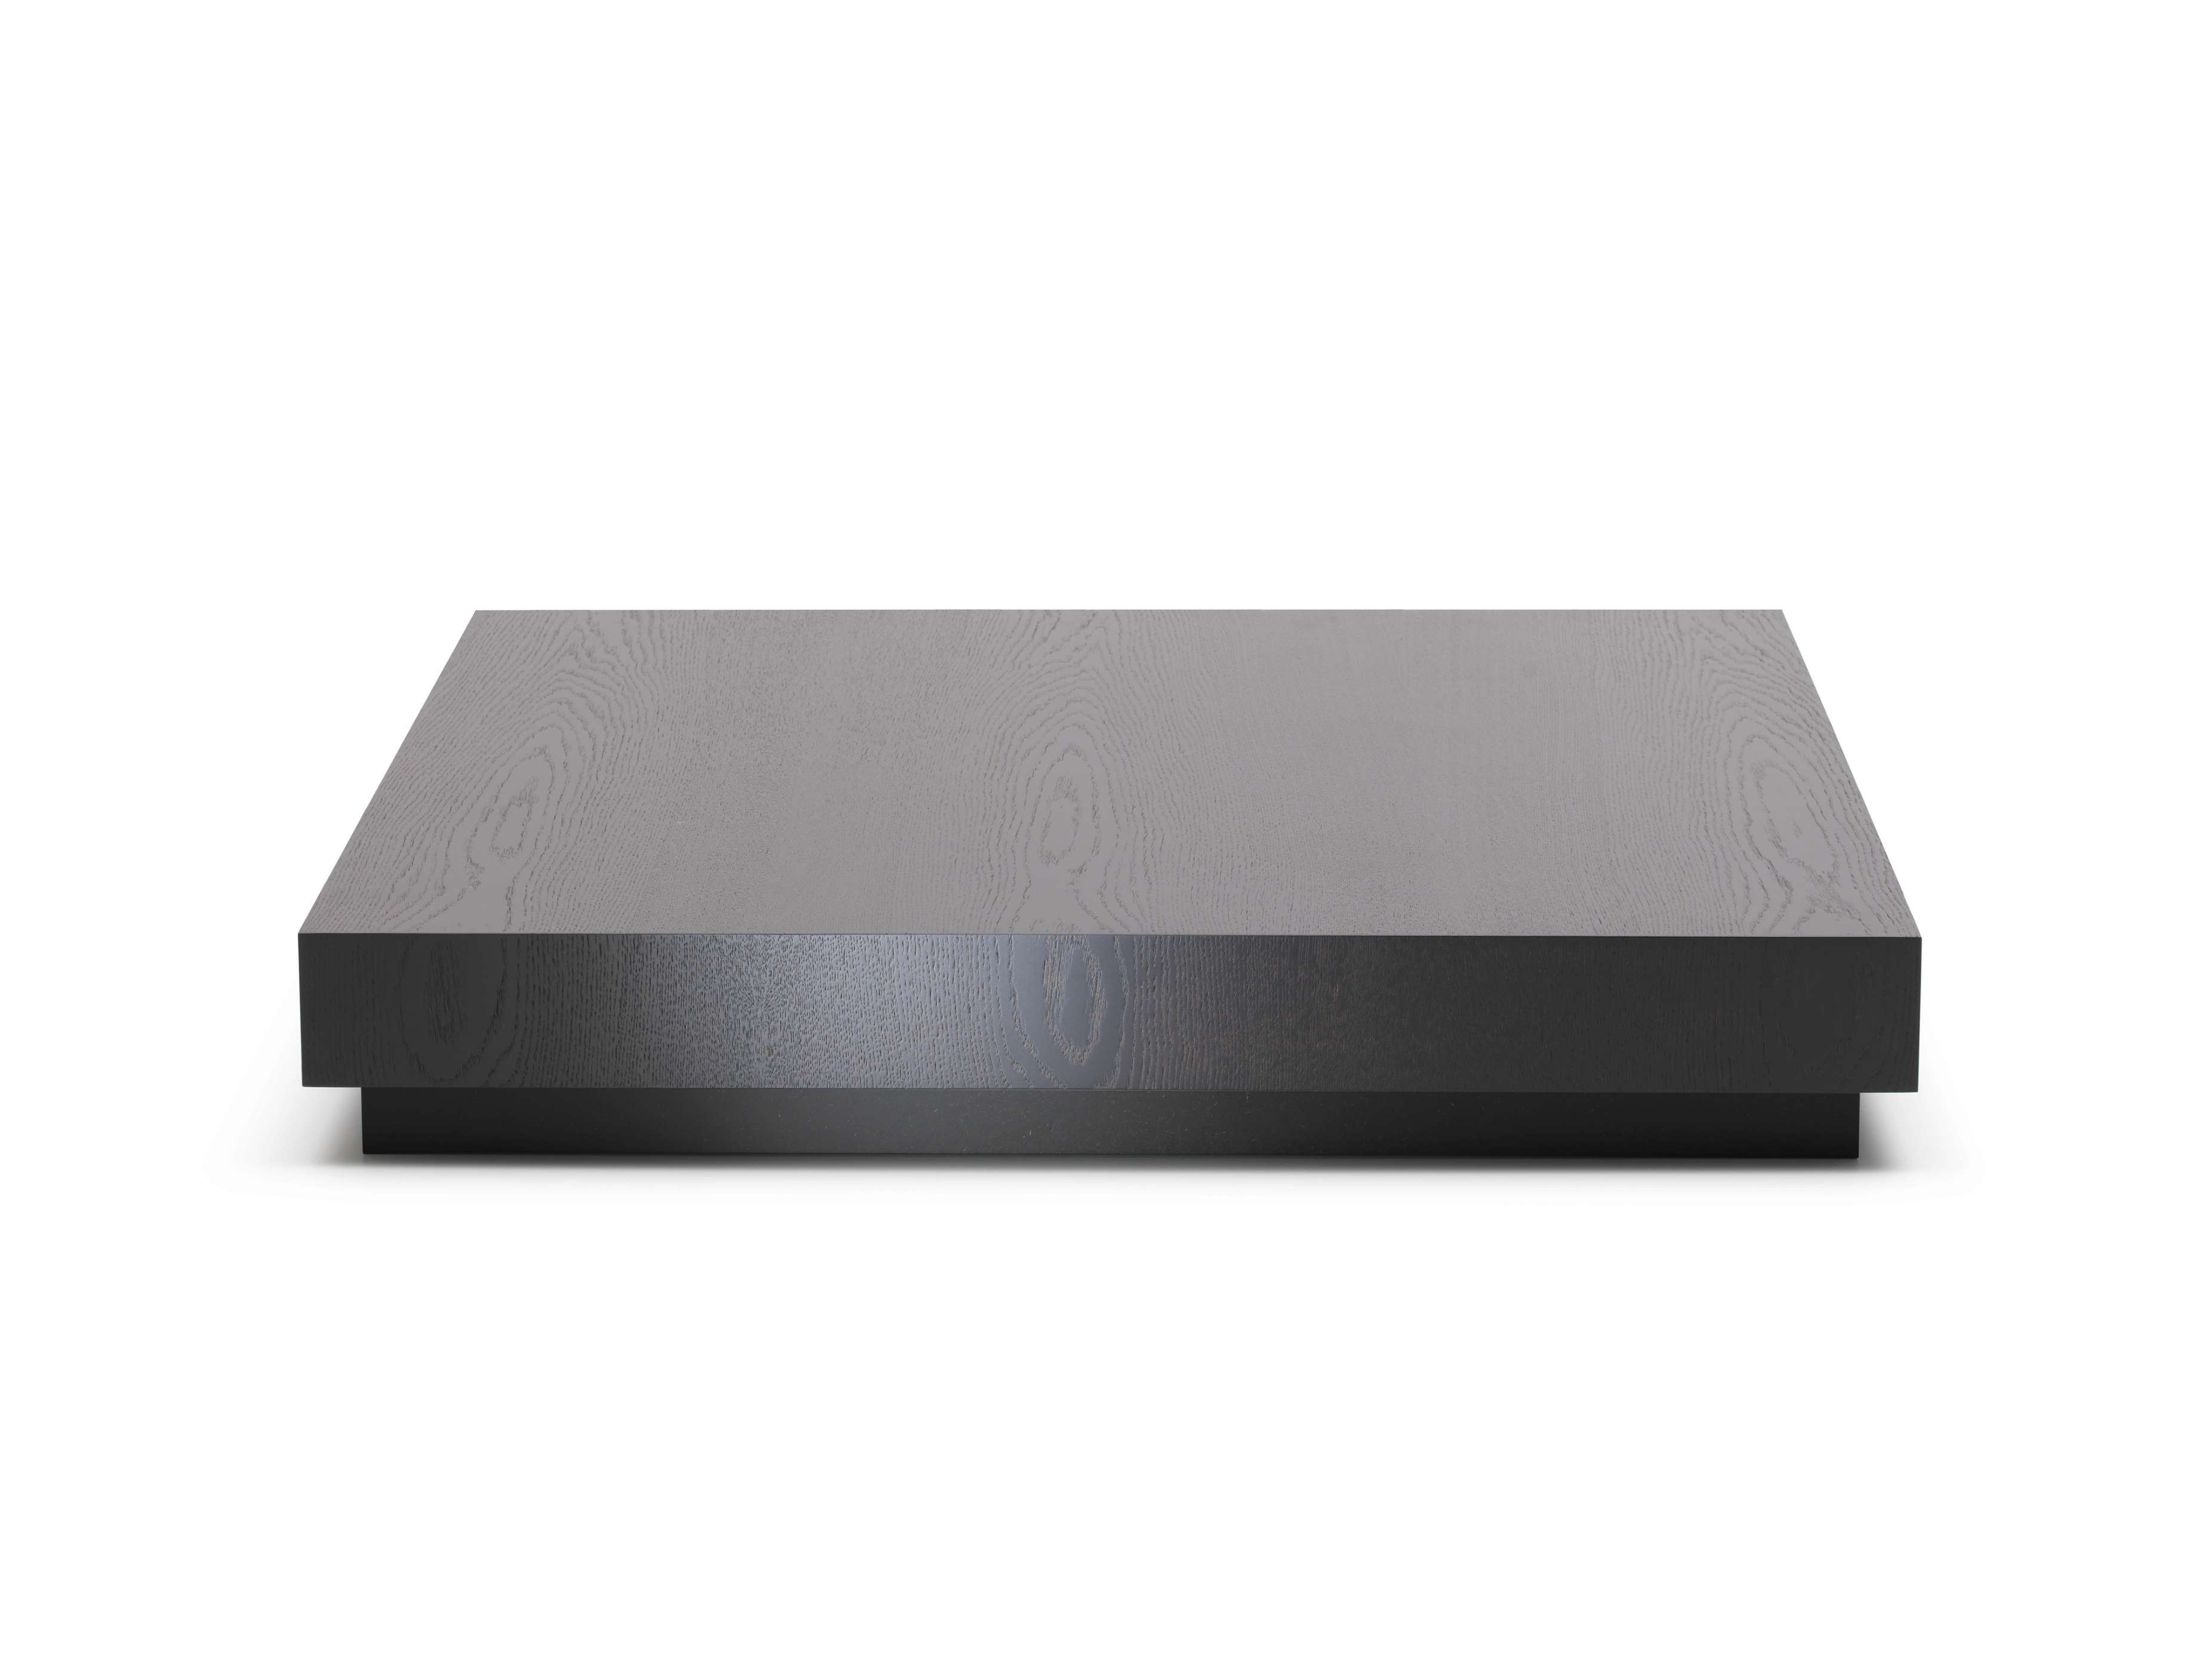 Square Wood Low Profile Coffee Table Painted With Black Color For In Latest Low Square Wooden Coffee Tables (View 8 of 20)